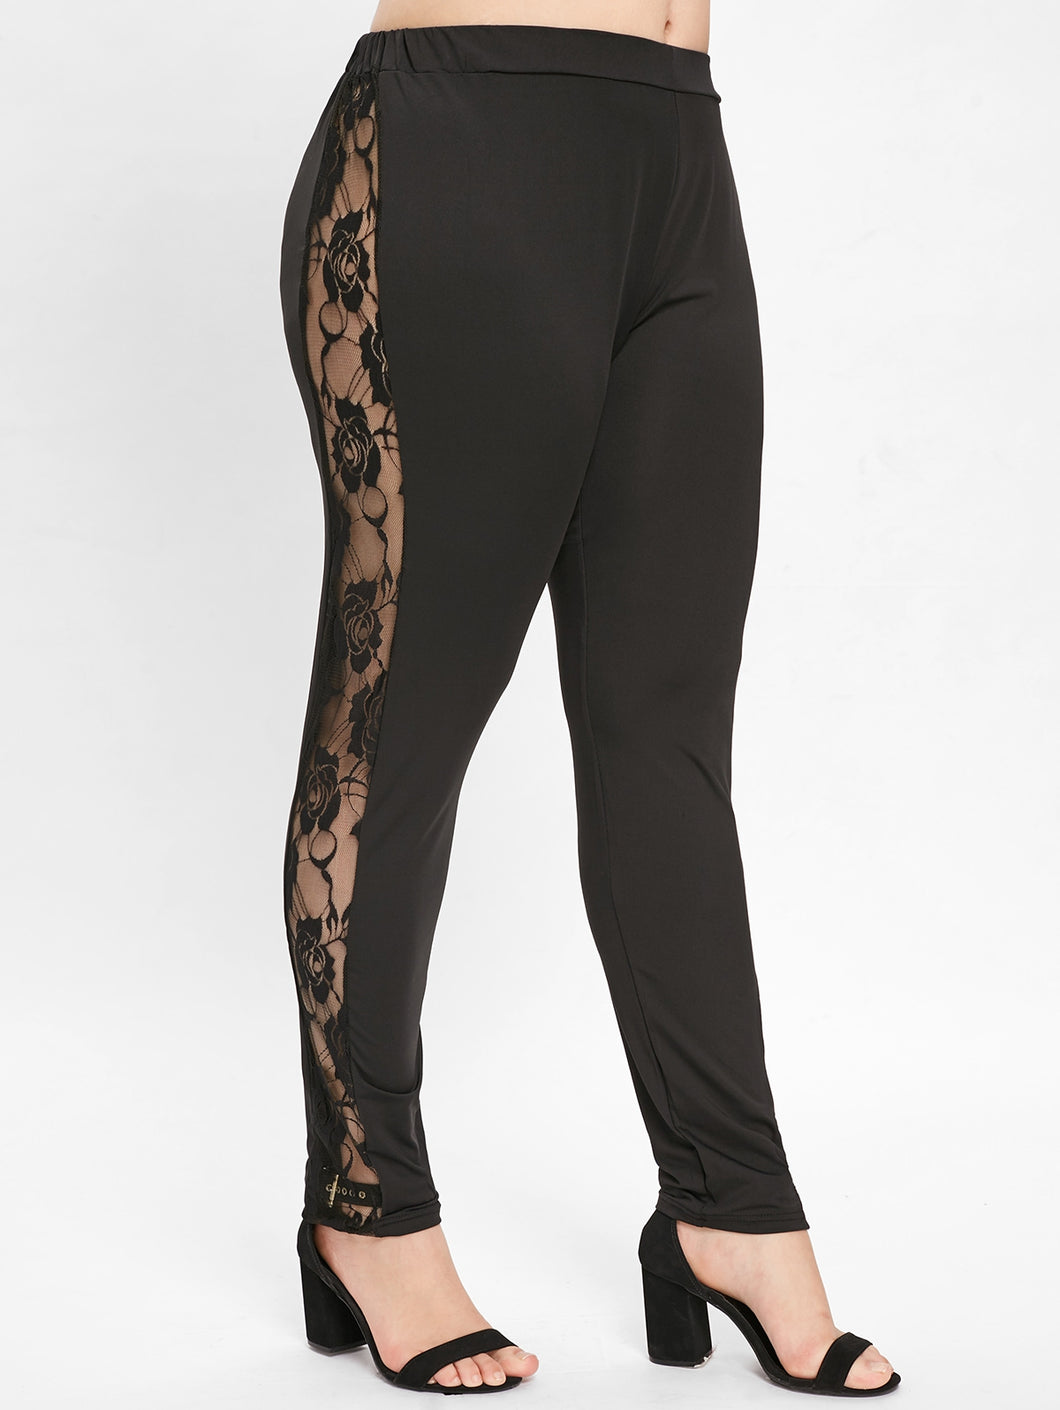 Plus Size Straight Side Lace Panel Leggings